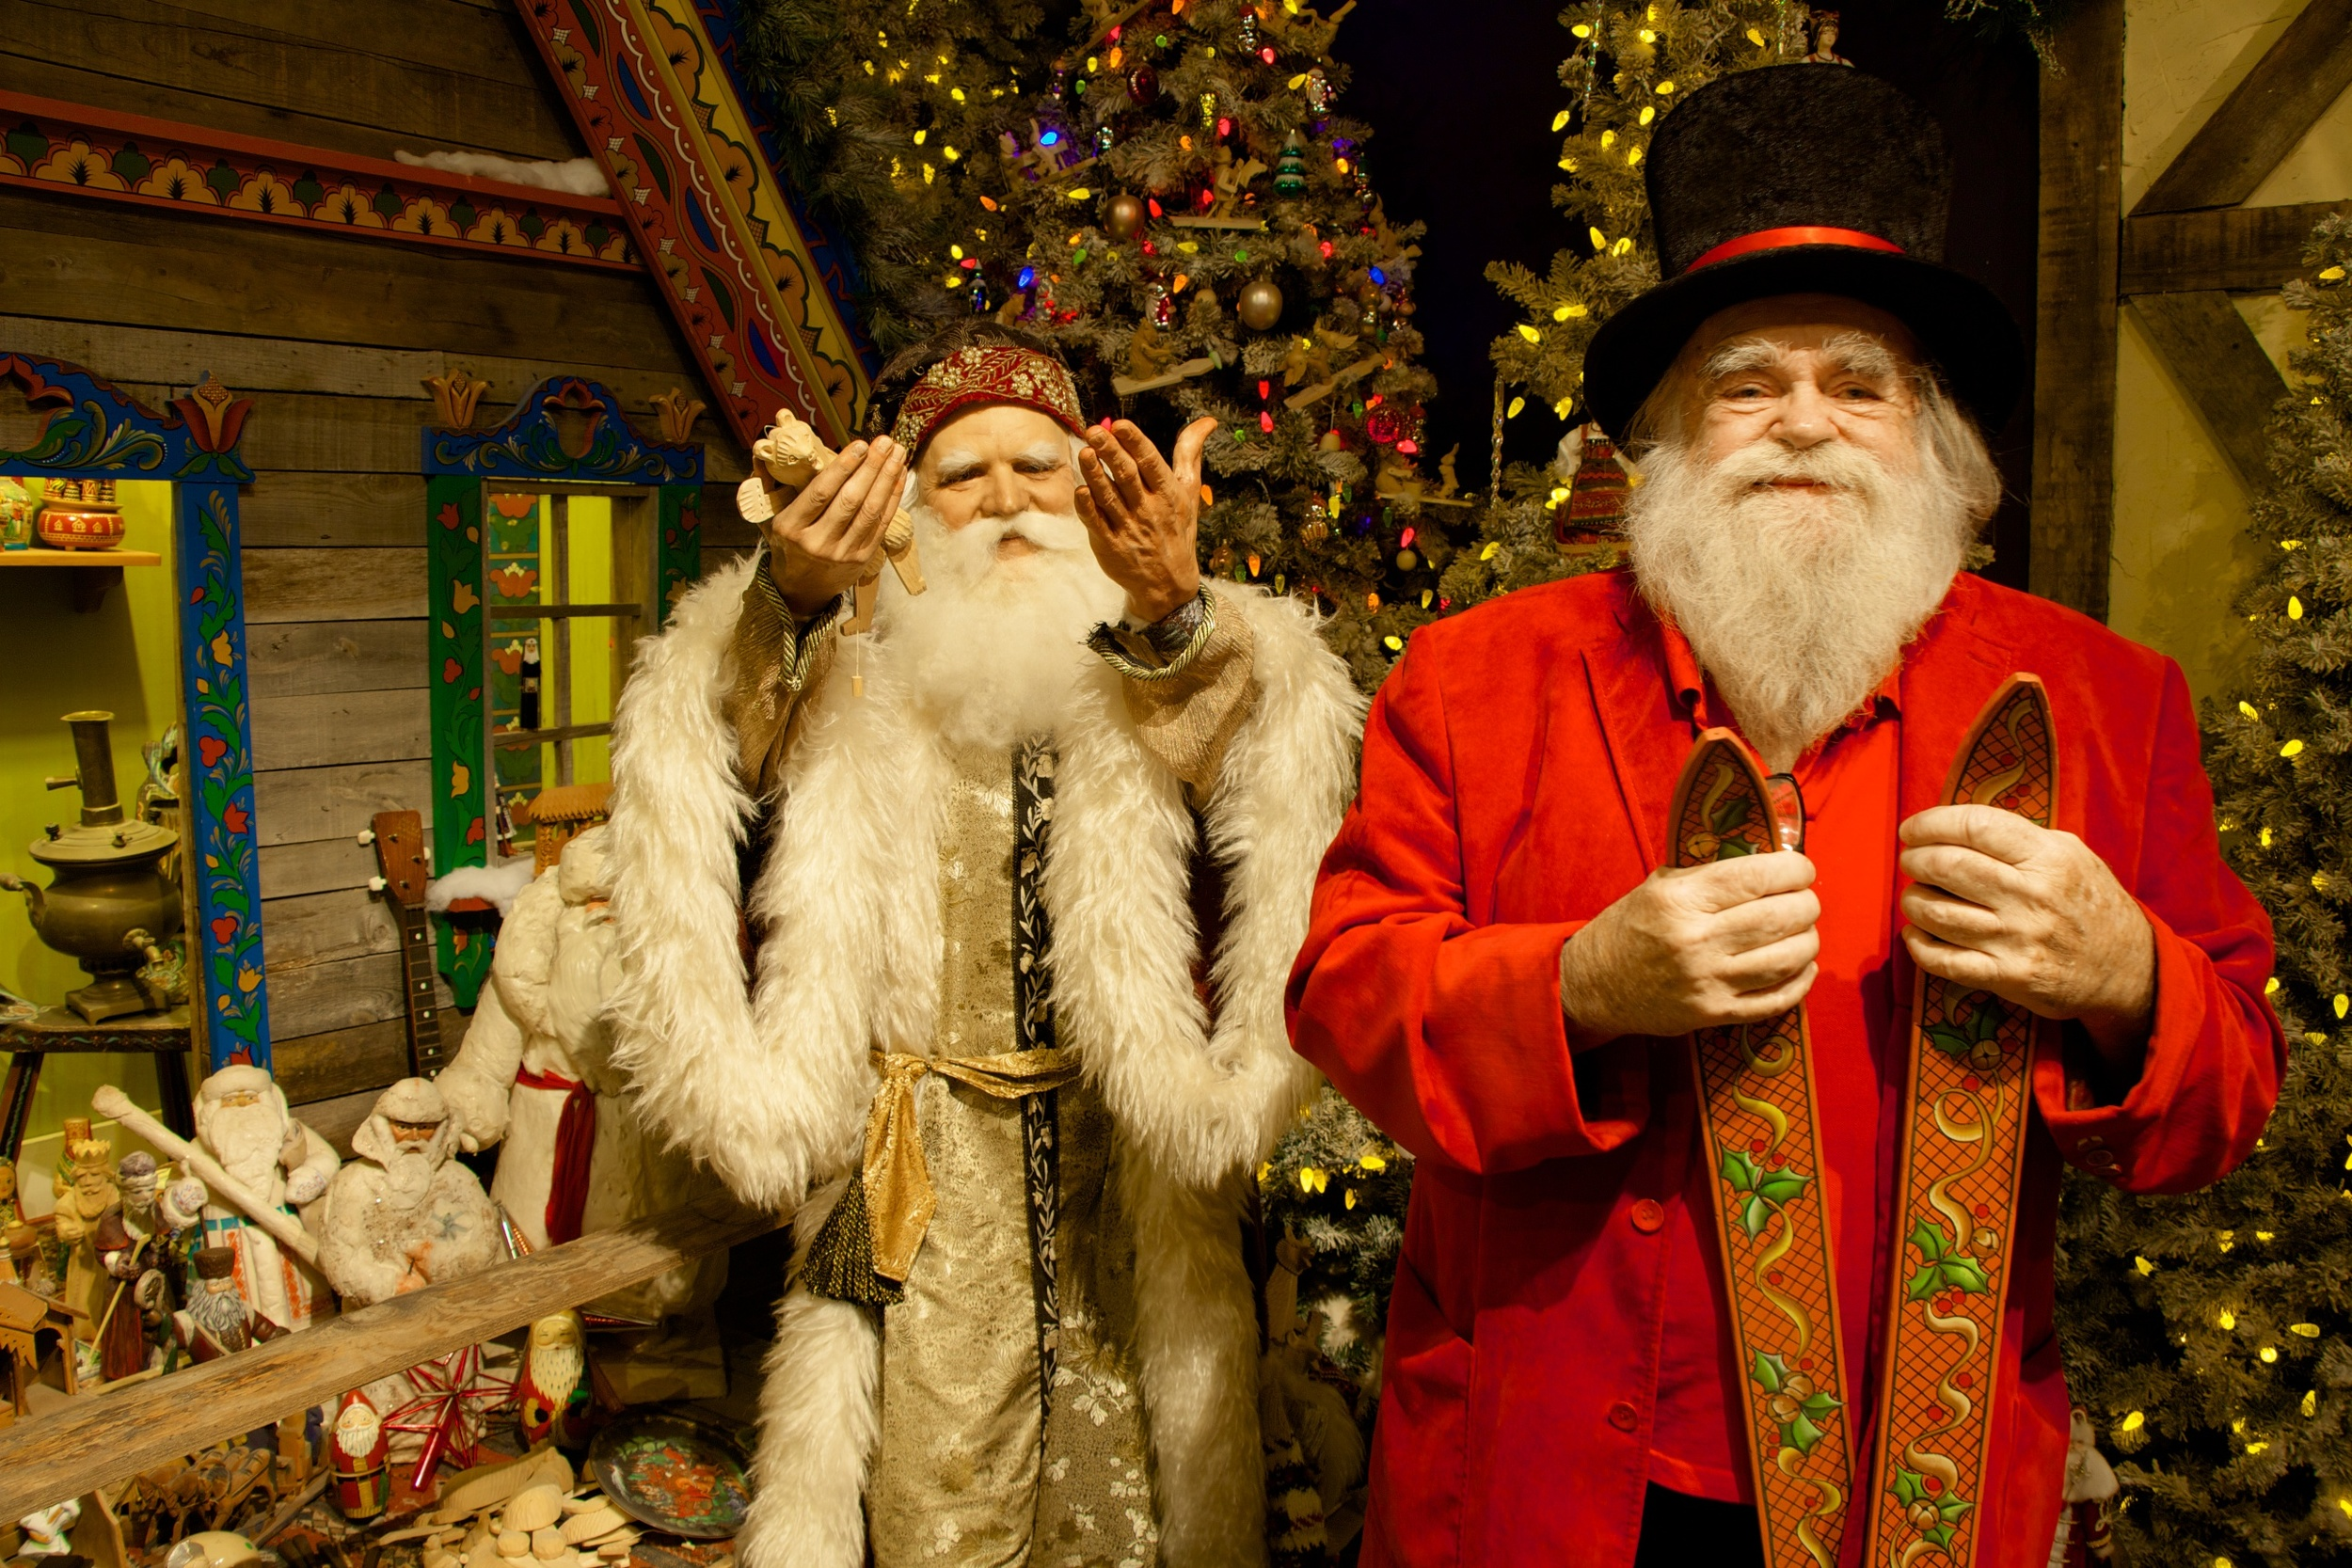 HAPPY NEW YEAR from Father Frost and Santa, Jr.(a.k.a. Jim Morrison in red). The figure of Father Frost, who delivers presents on New Year's Eve in Russia, is part of a  Christmas Around the World  exhibition at the National Christmas Center.